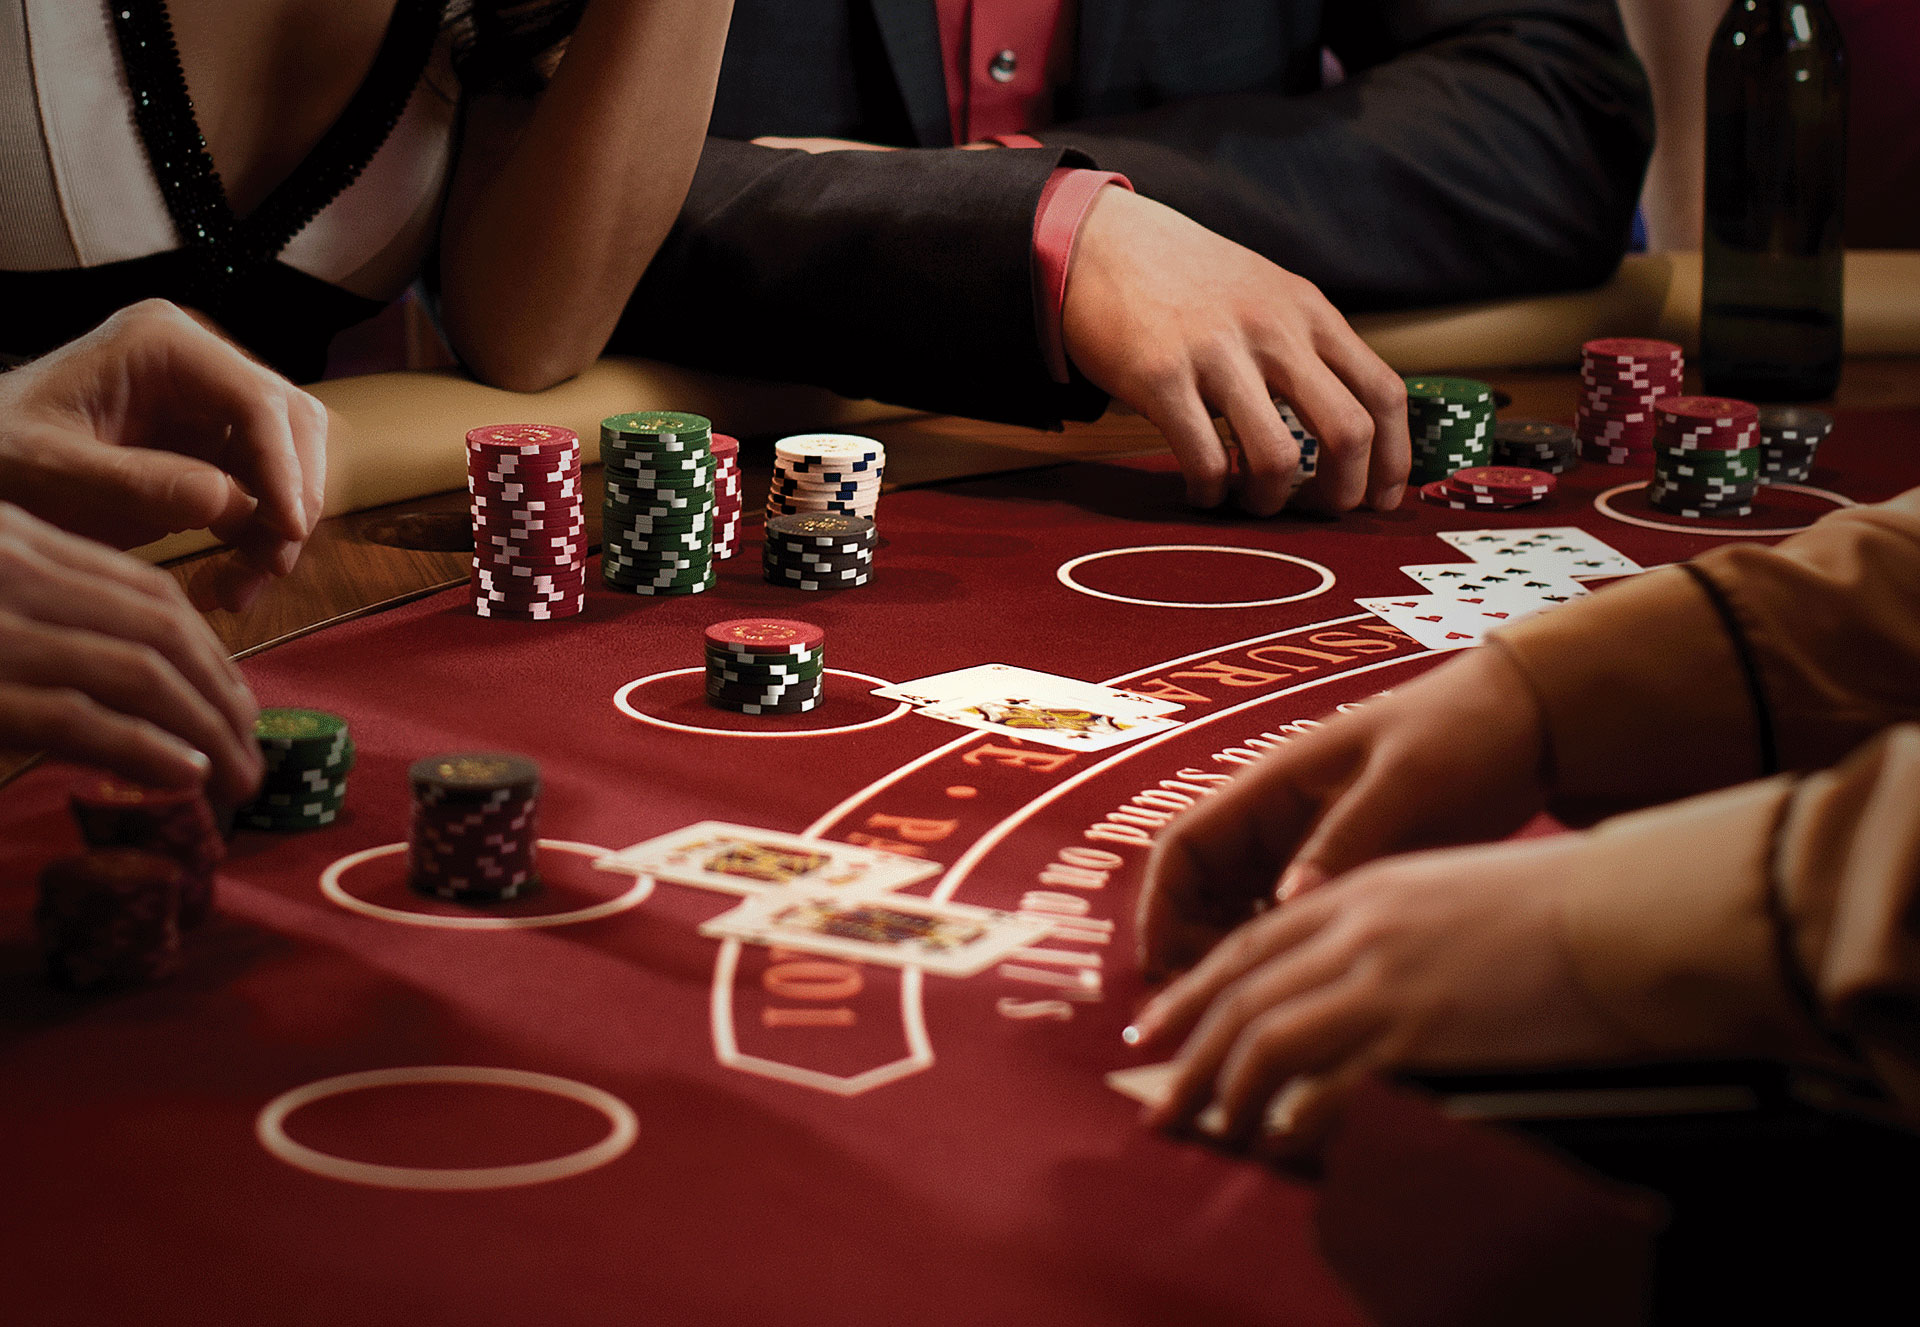 Time to earn more money through online gambling and games